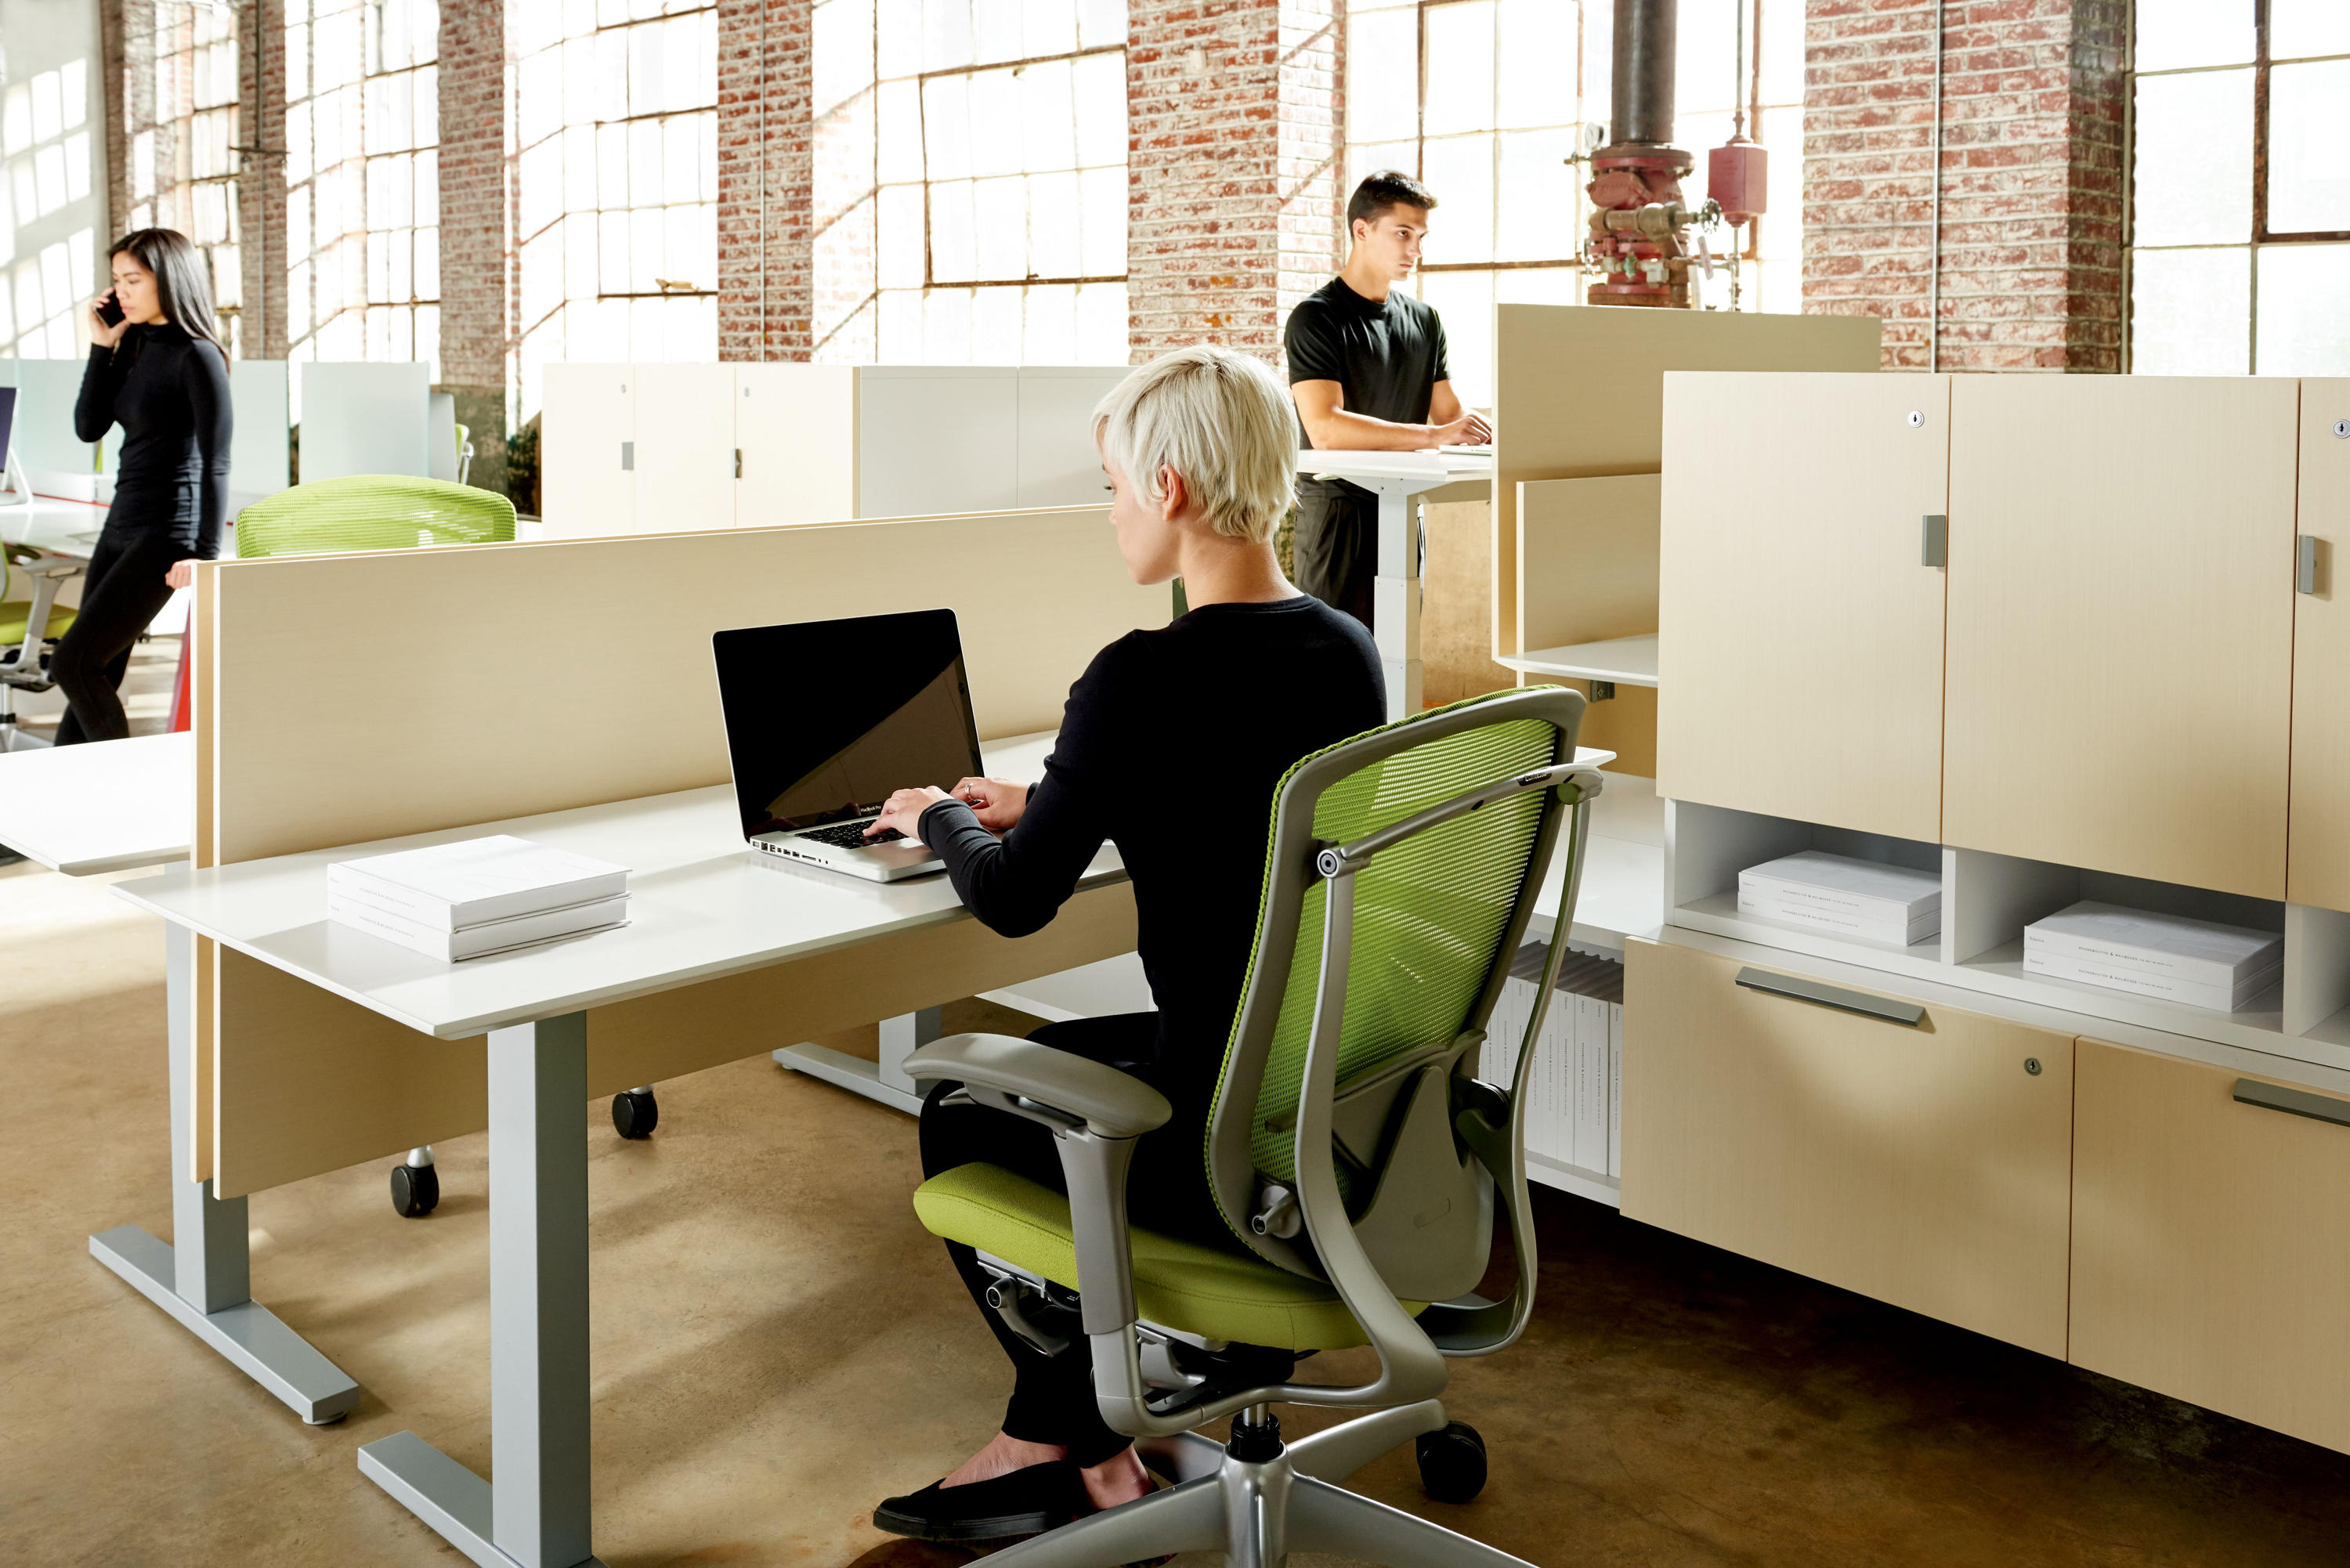 Contessa Chair Contessa Office Chairs From Teknion Architonic